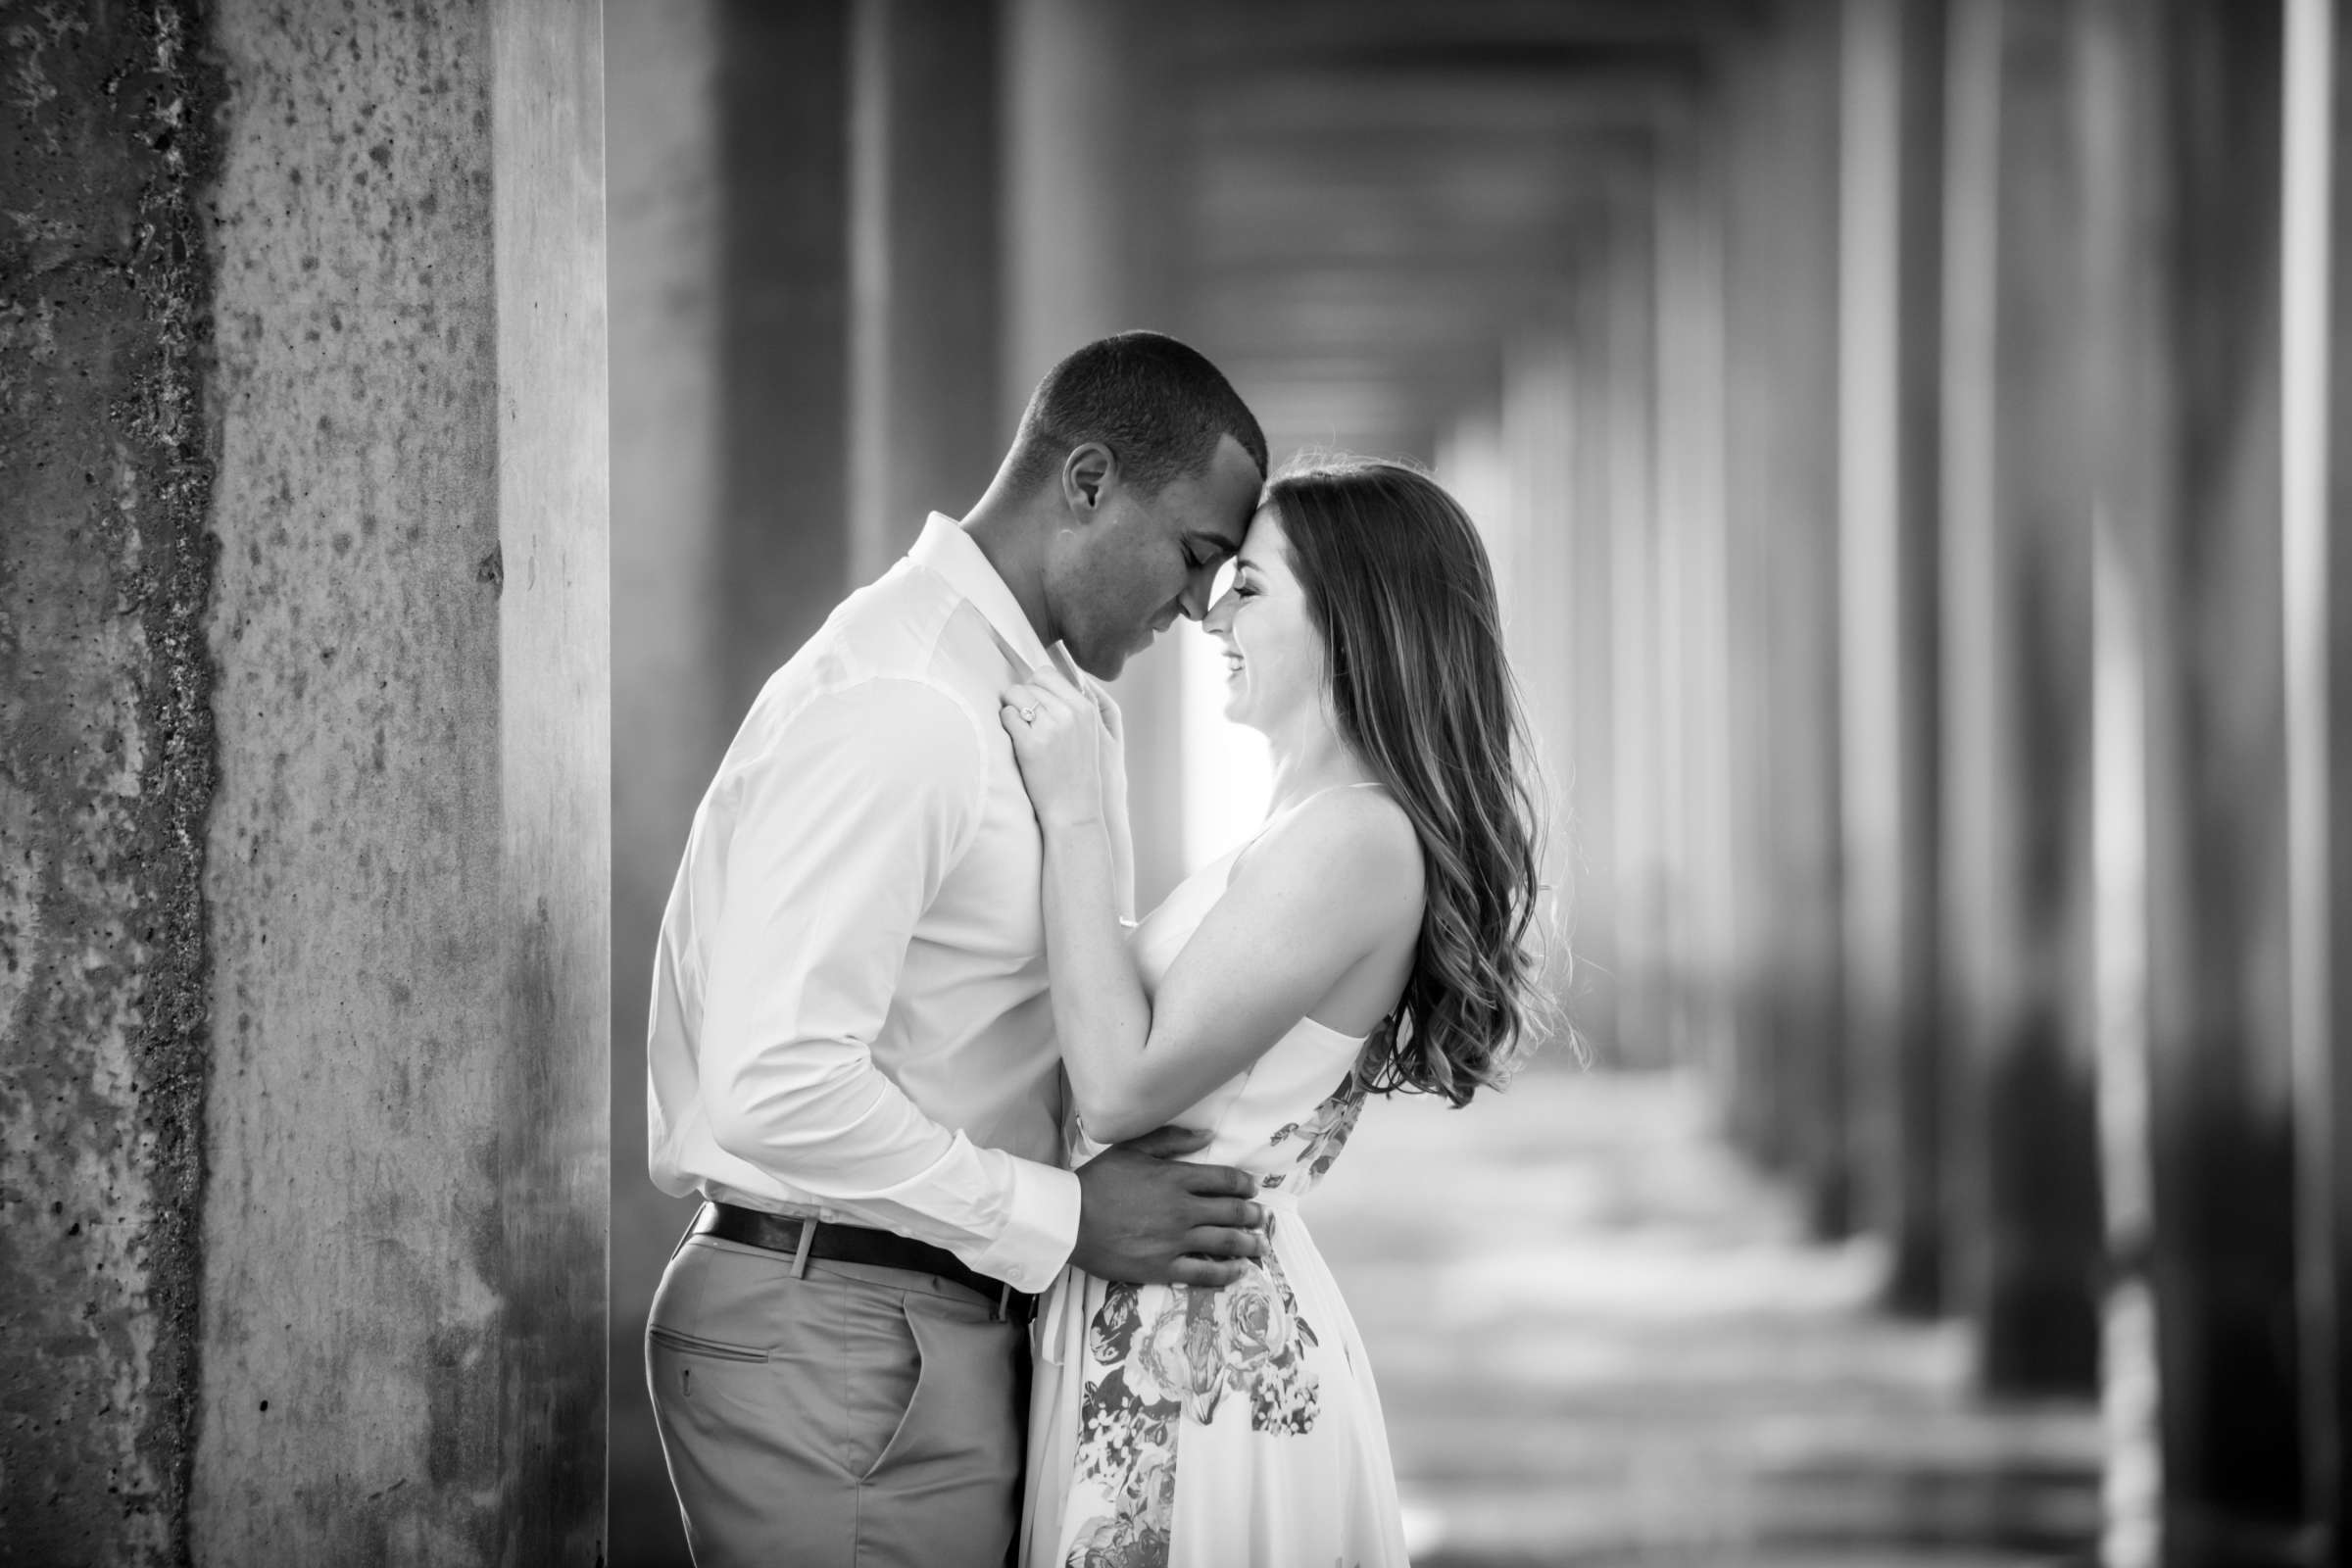 Engagement, Alexia and Kalin Engagement Photo #617331 by True Photography